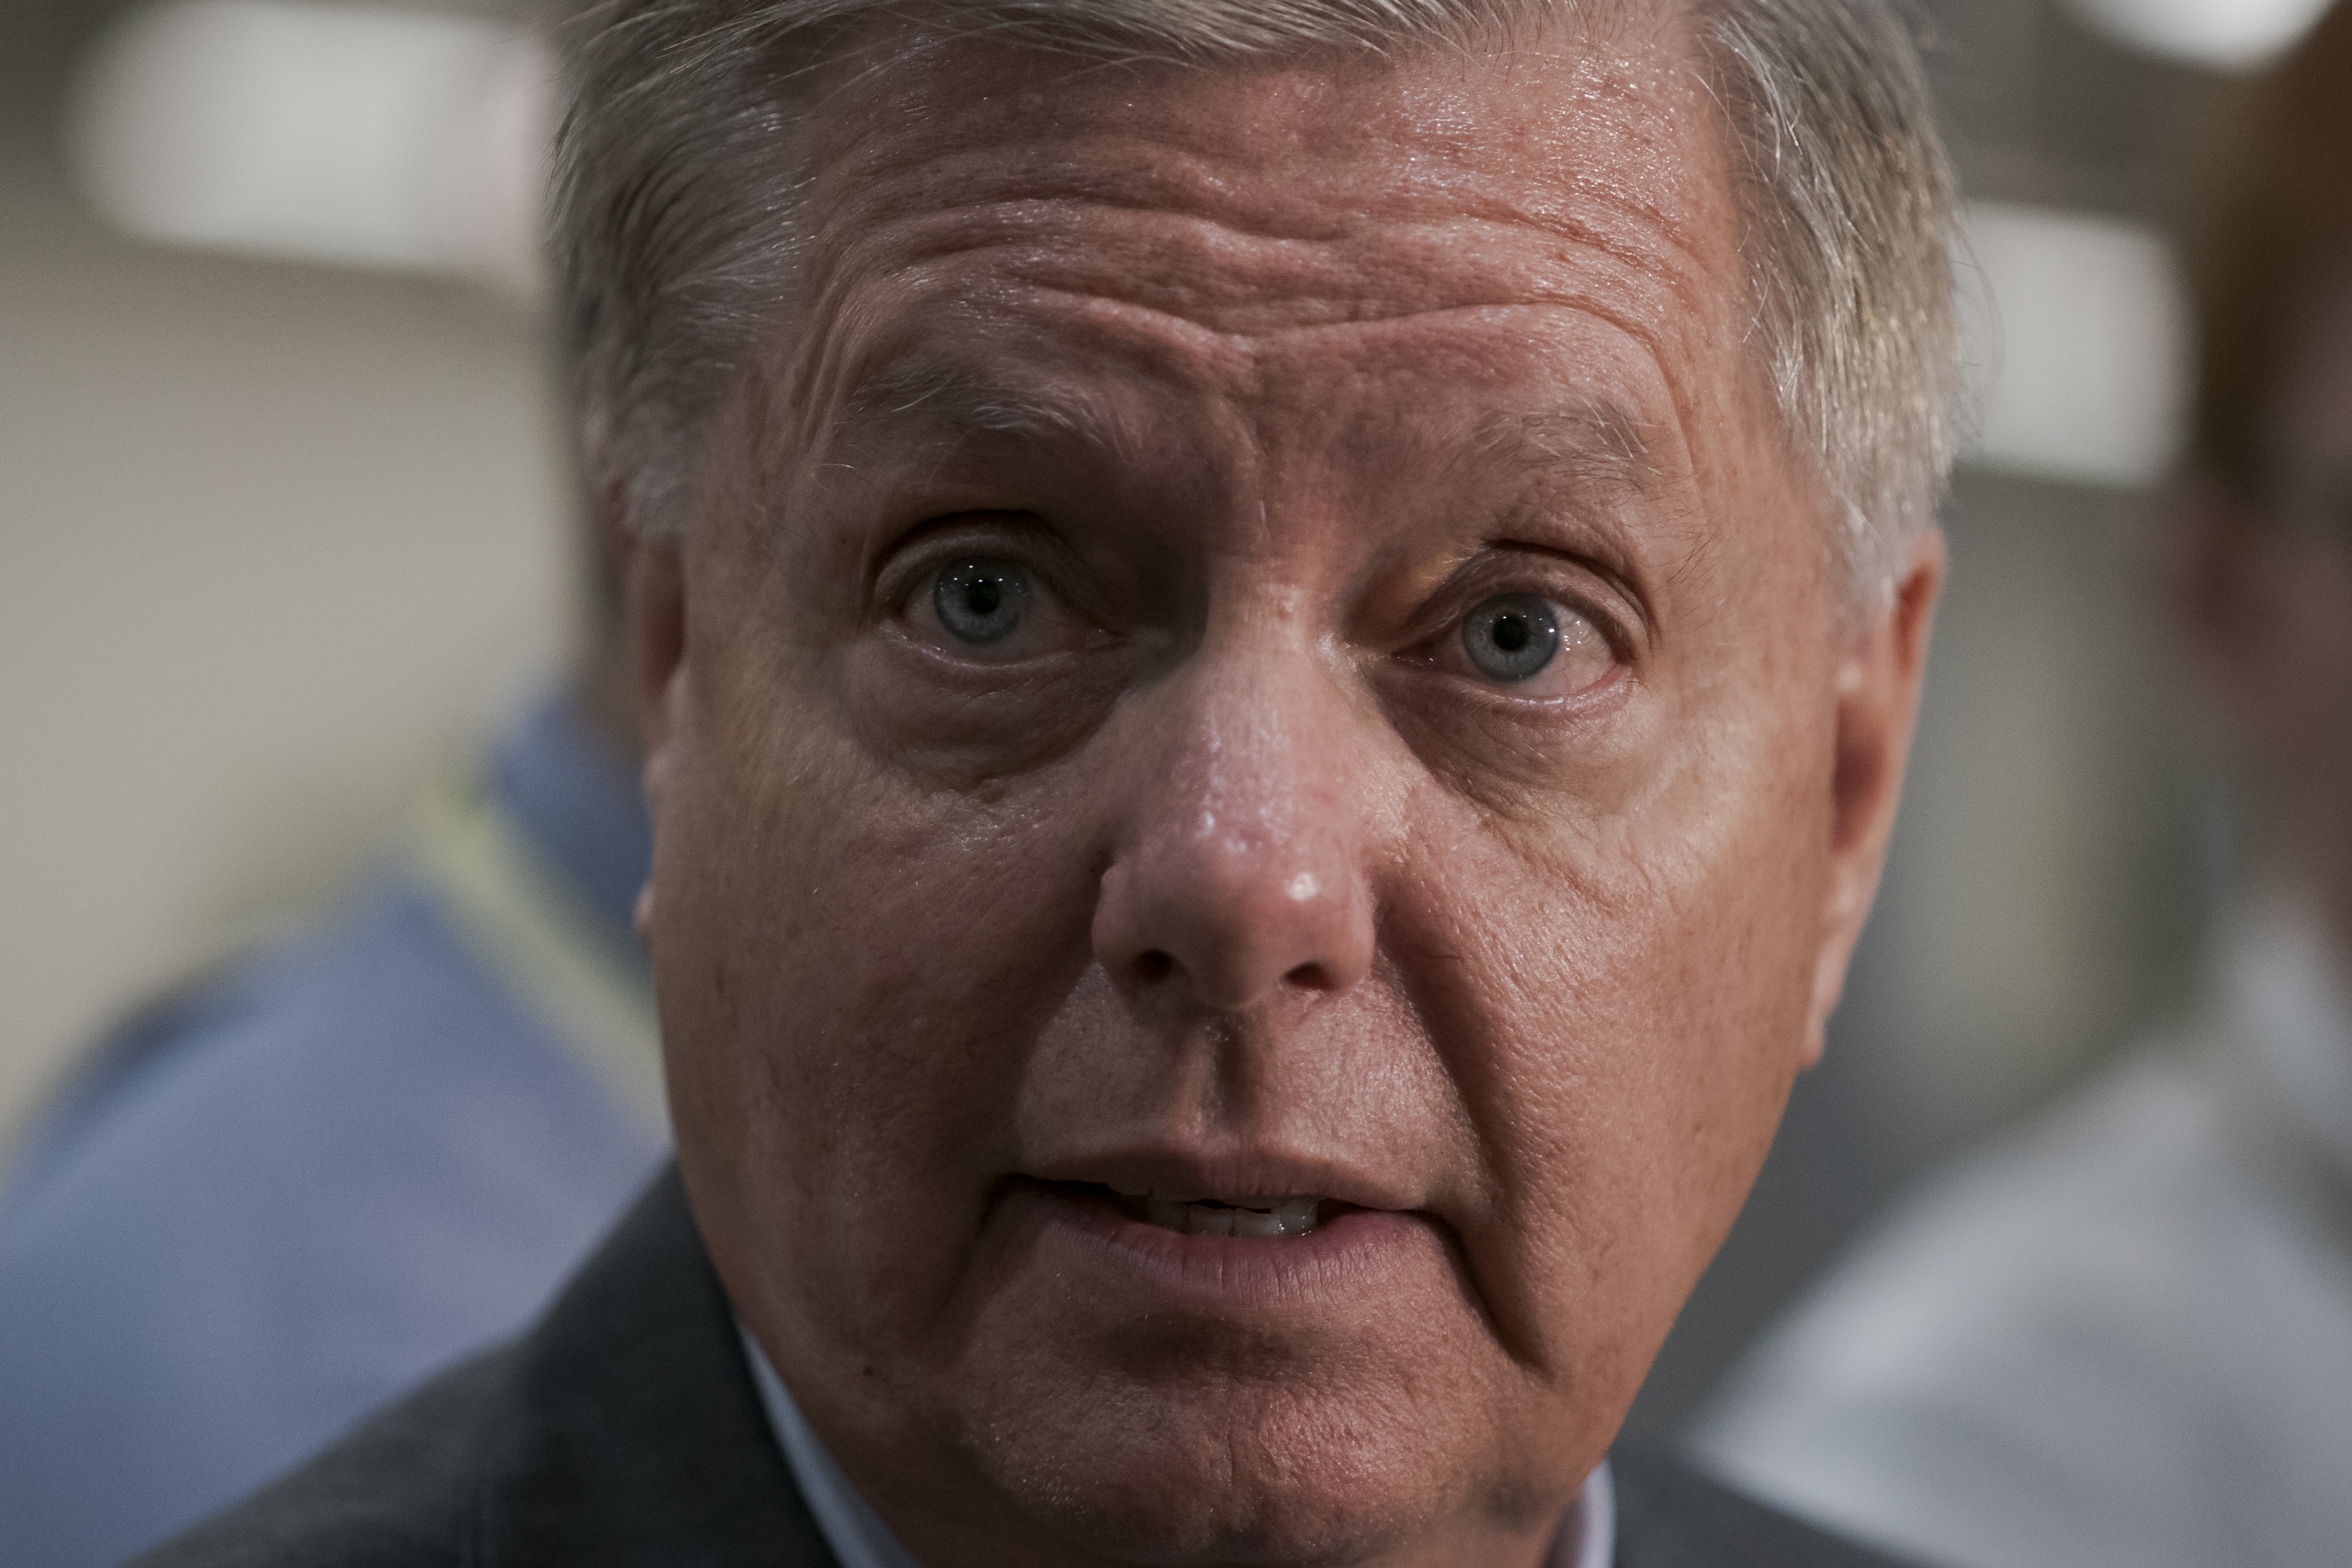 Sen. Lindsey Graham, R-S.C., has been vocal in disagreeing with President Trump on the decision to pull U.S. troops out of northeastern Syria.